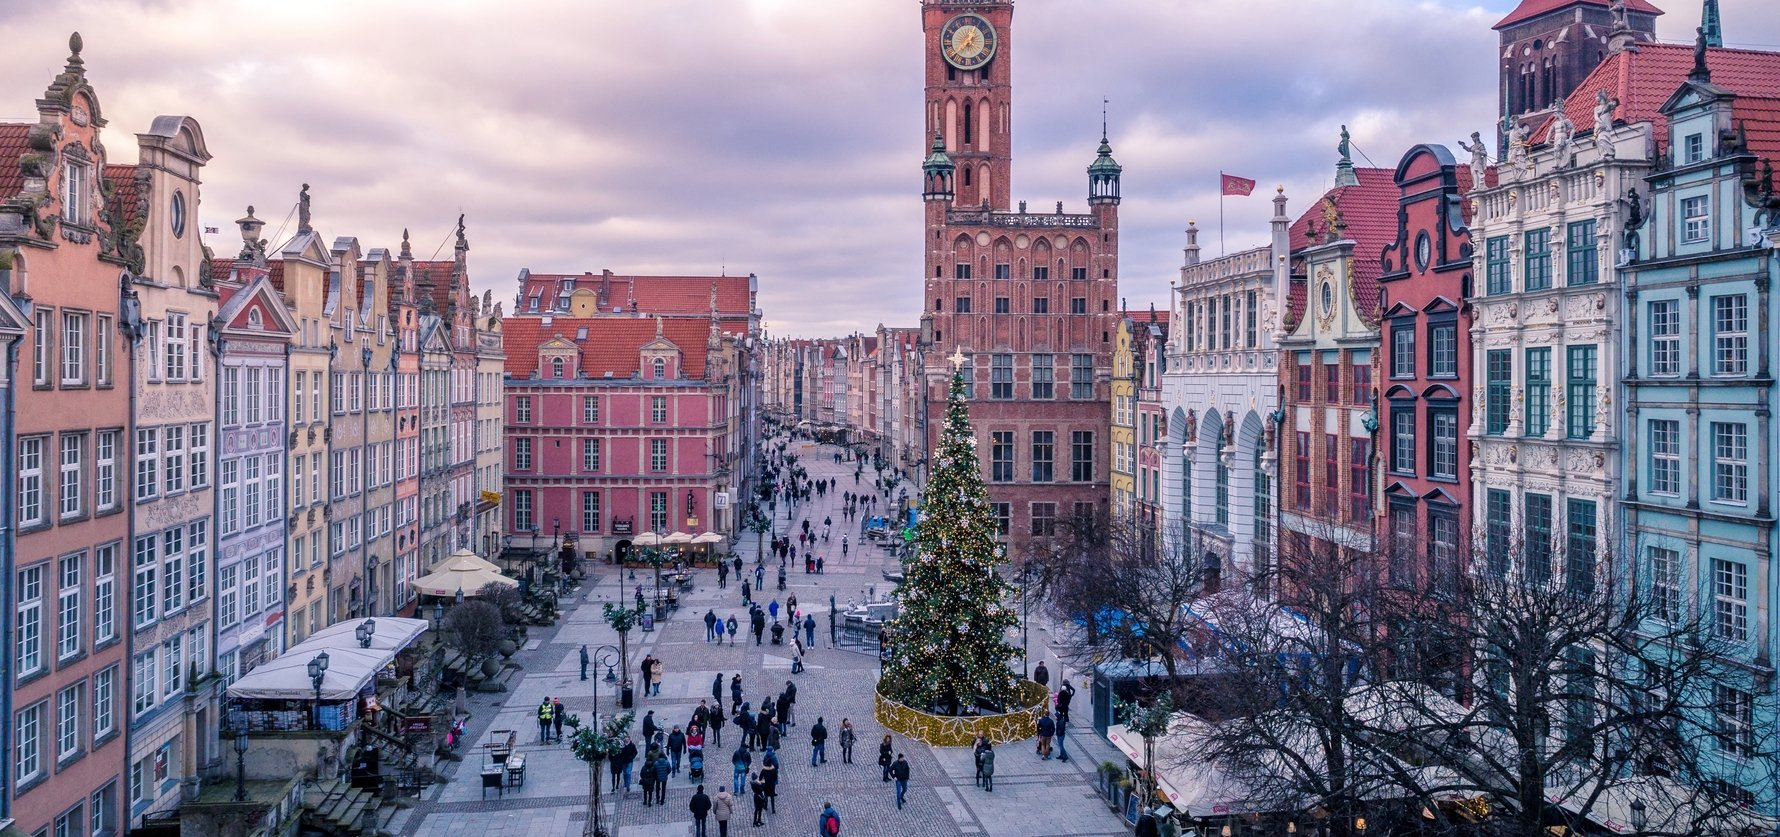 Gdańsk at Christmas, Photo by Aleksander